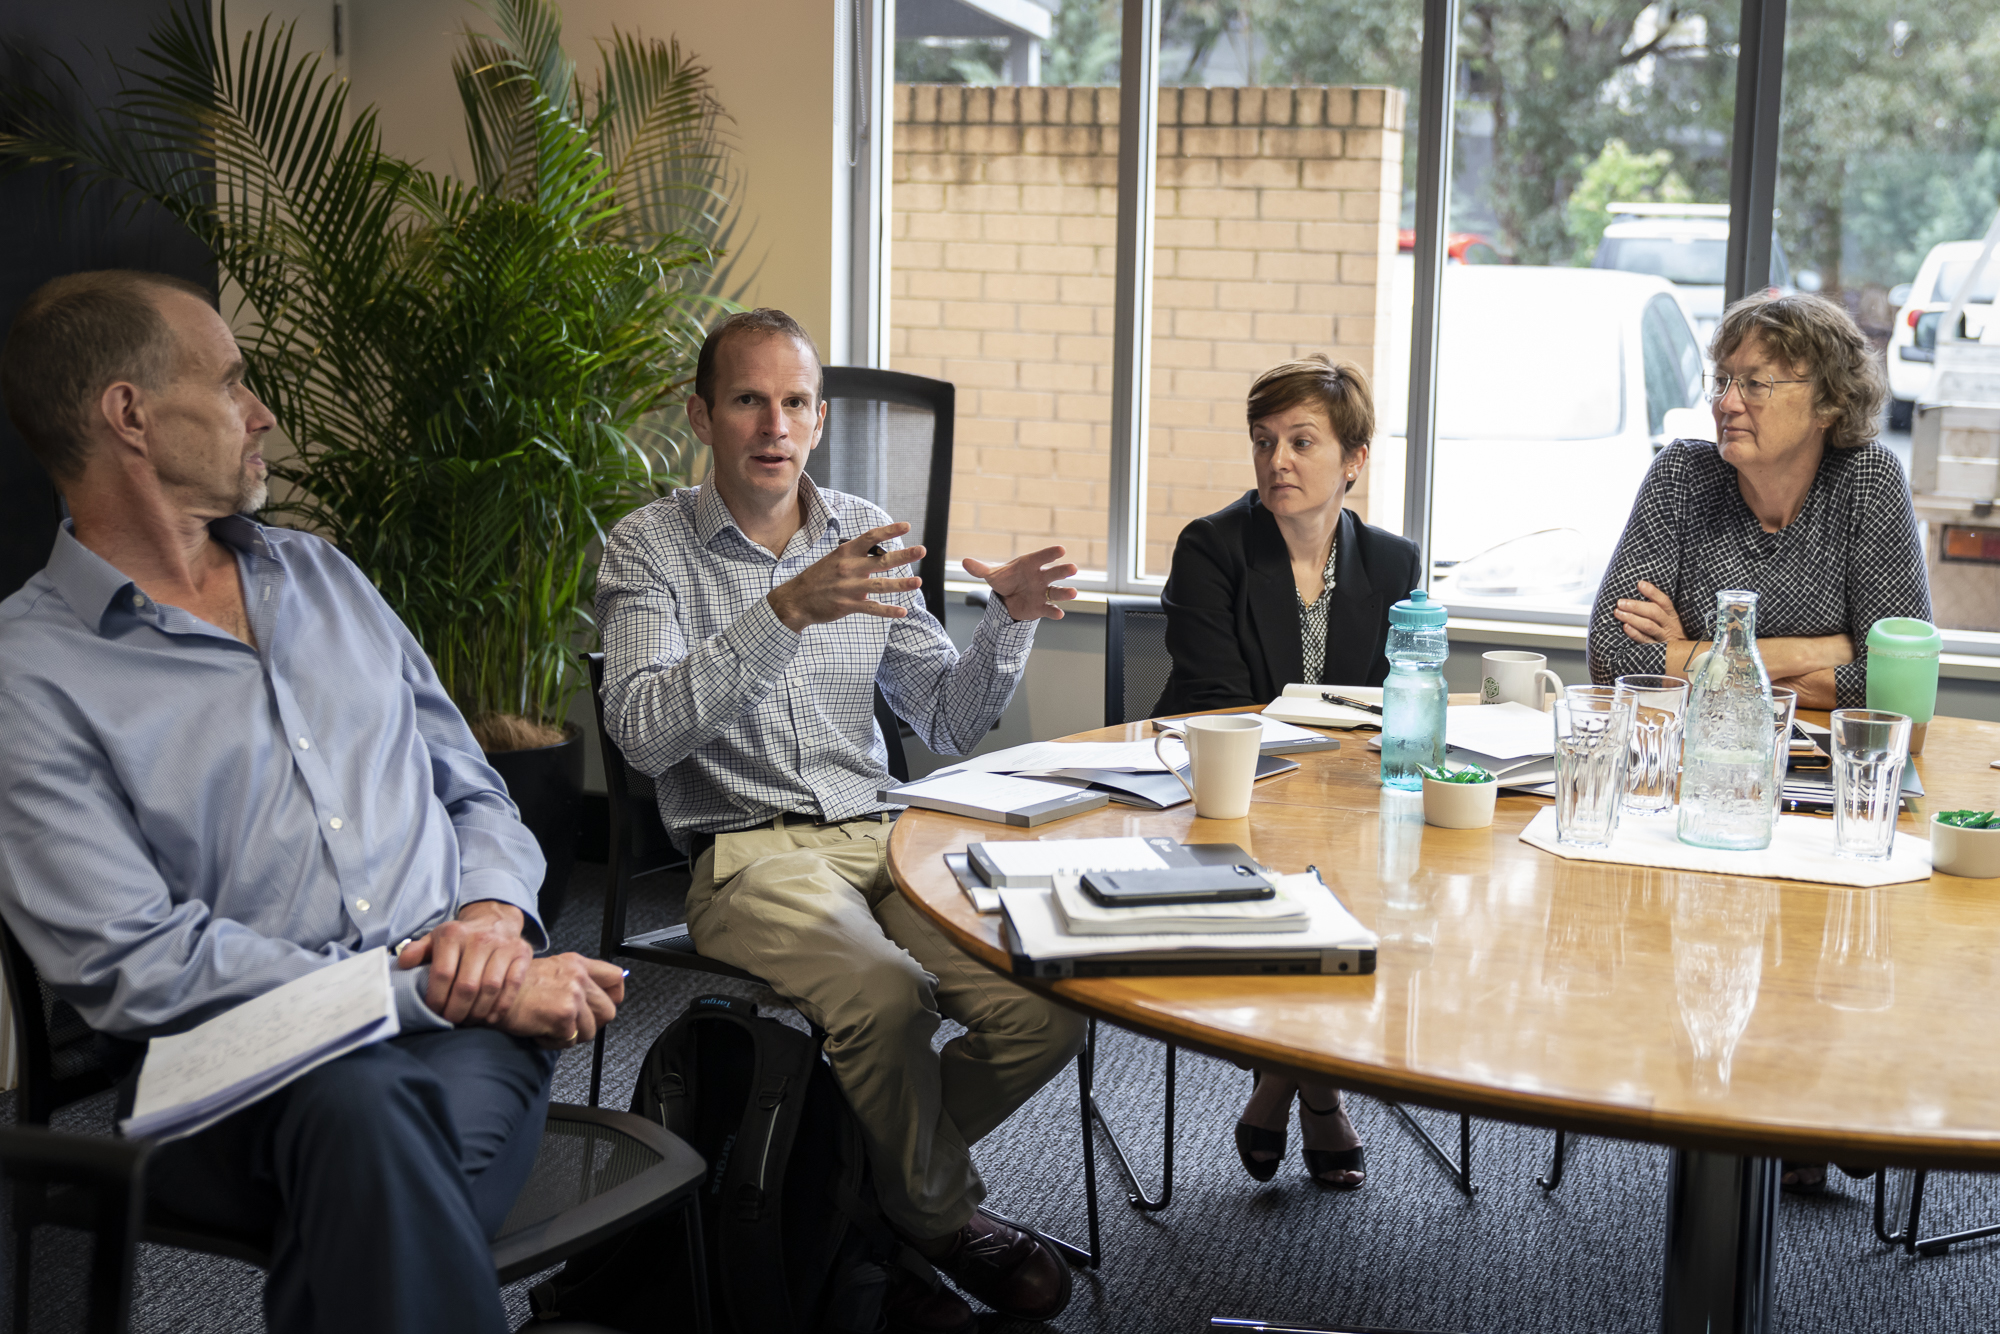 (L-R) Dan Walker (ACIAR Chief Scientist), Dave Penton (CSIRO SDIP) and ACIAR Research Program Managers Sarina McFadyen (Farming Systems) and Irene Kernot (Horticulture) discuss options for diversification of farming systems in the EGP.